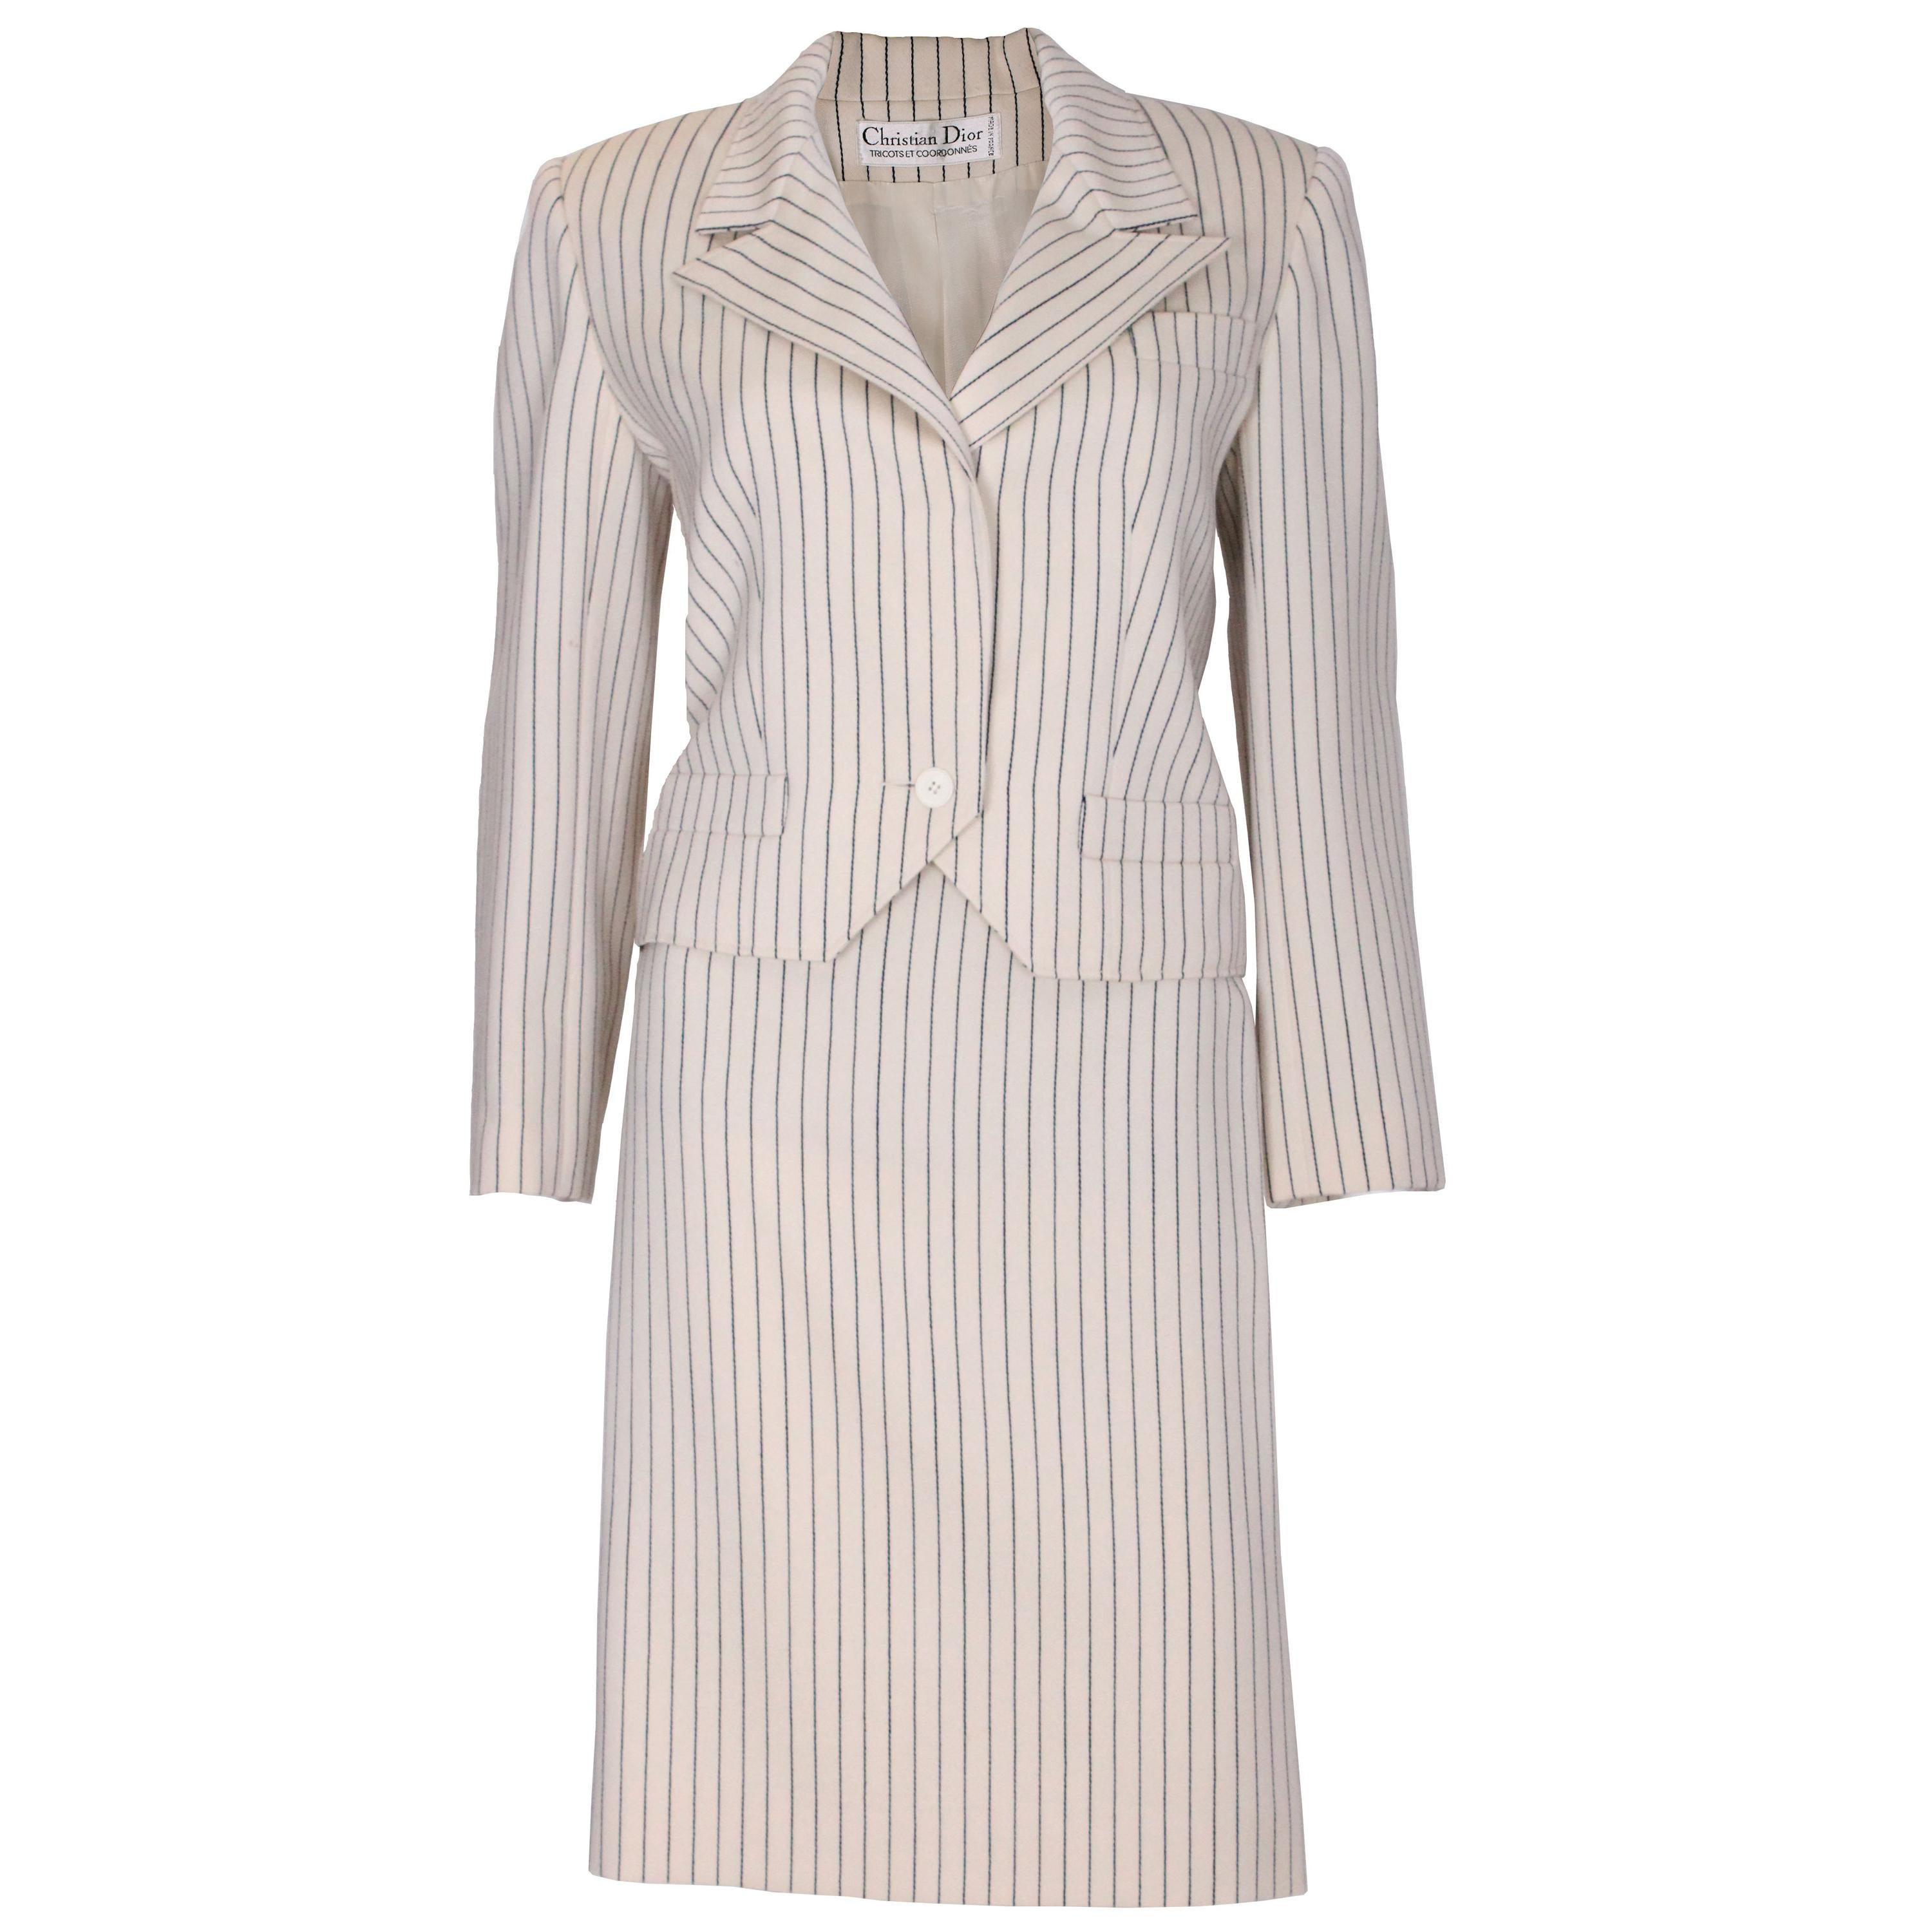 86010850cfe Vintage Christian Dior Clothing - 972 For Sale at 1stdibs